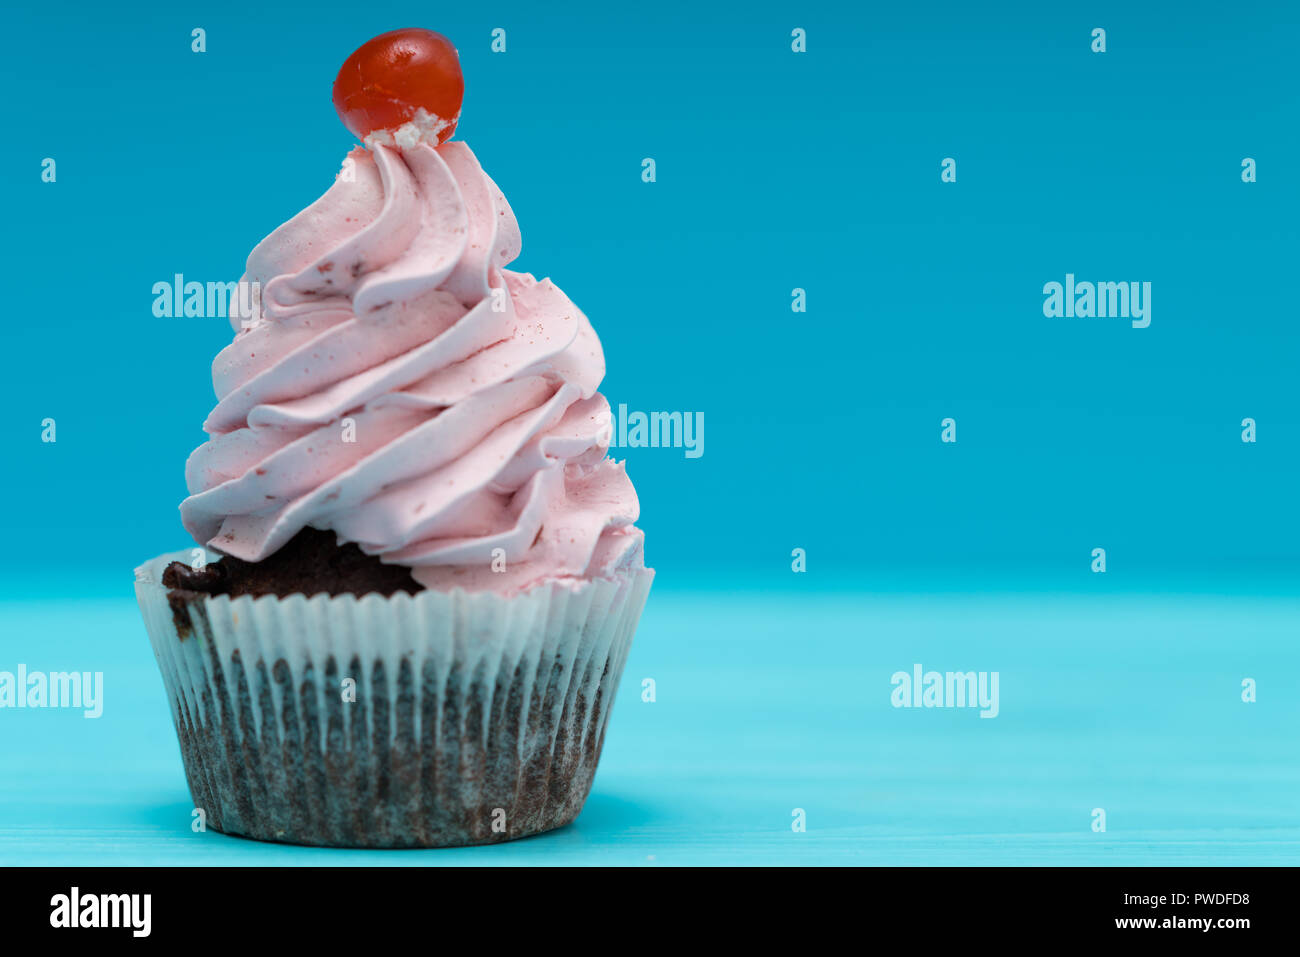 Single cupcake with twirled pink icing and cherry on a blue background with copy space - Stock Image